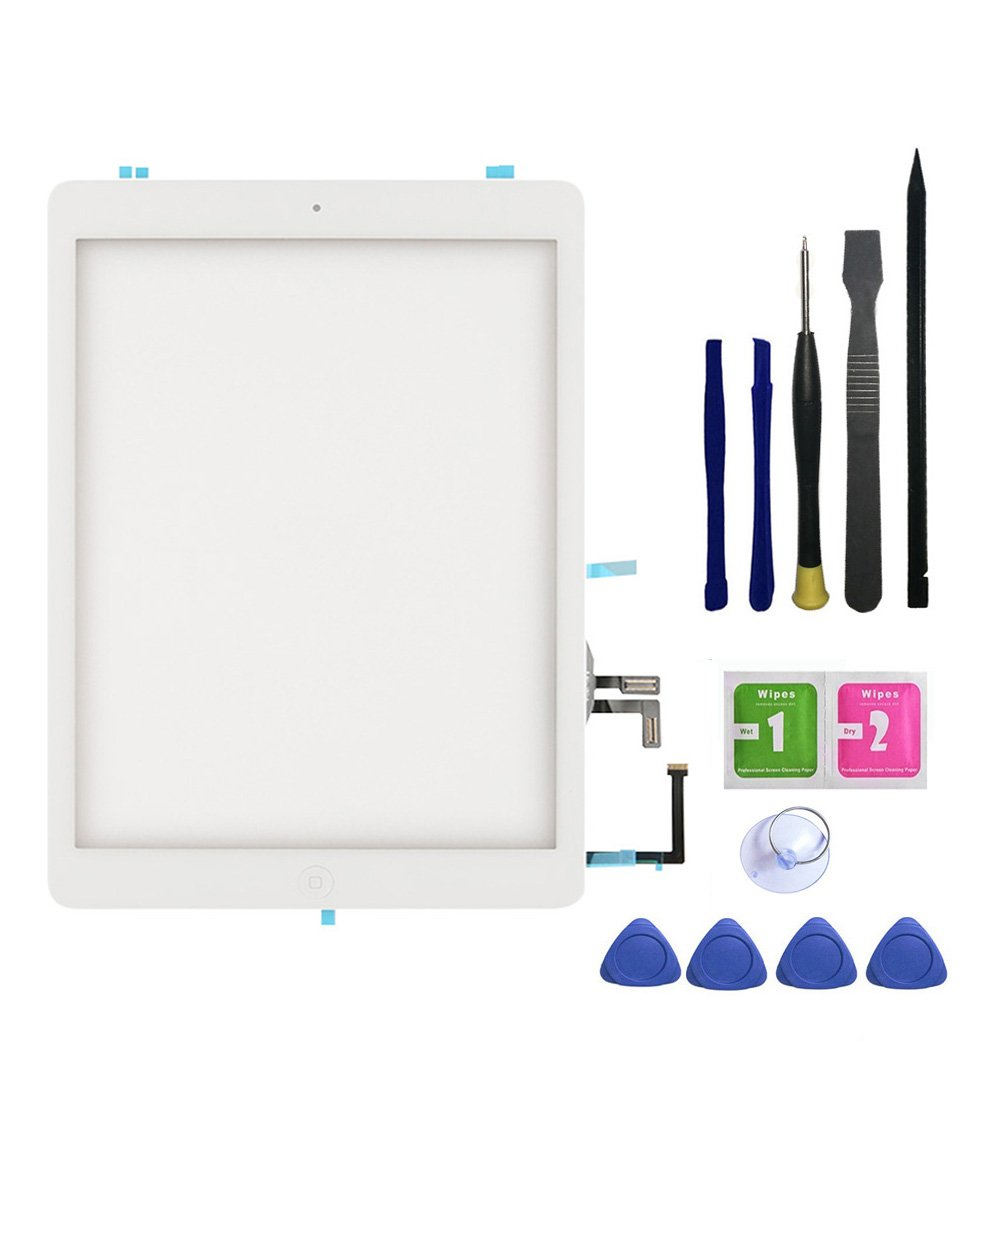 FeiyueTech IPad Air 1st Generation (IPad 5) Touch Screen Digitizer Replacement ,Front Glass Assembly -Includes Home Button + Camera Holder+PreInstalled Adhesive with tools kit .(white)